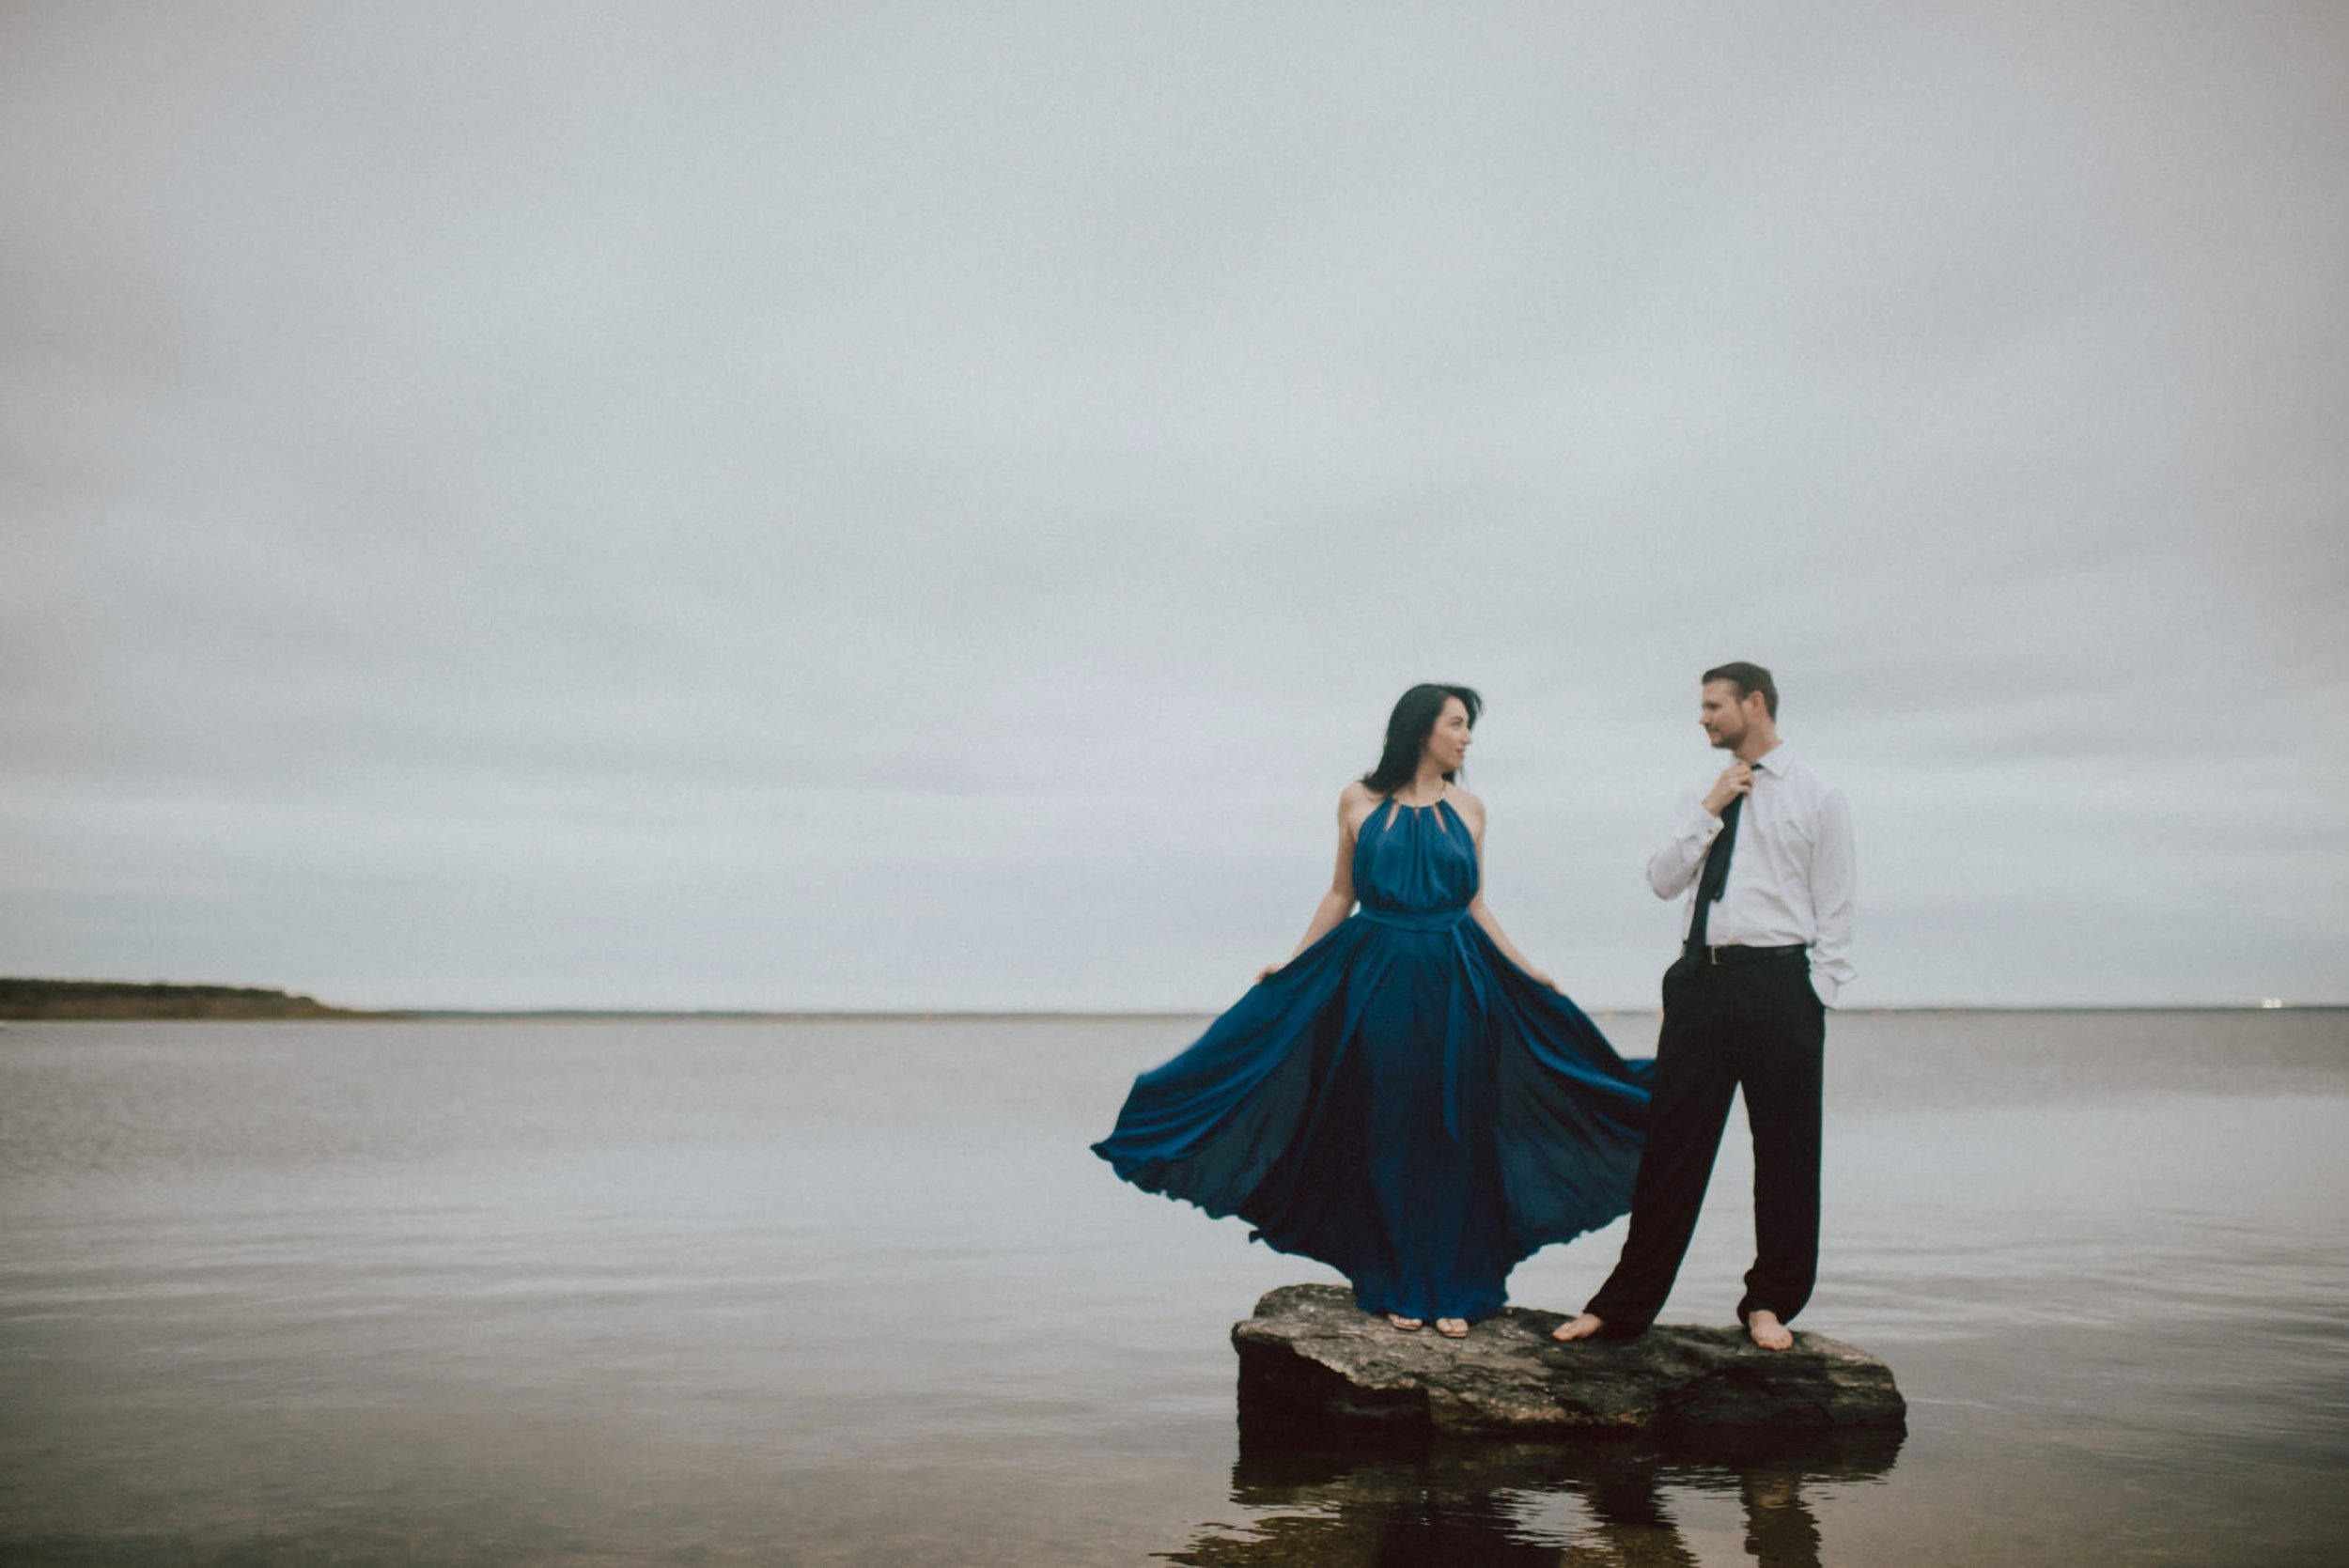 Long-beach-island-engagement-session-61.jpg